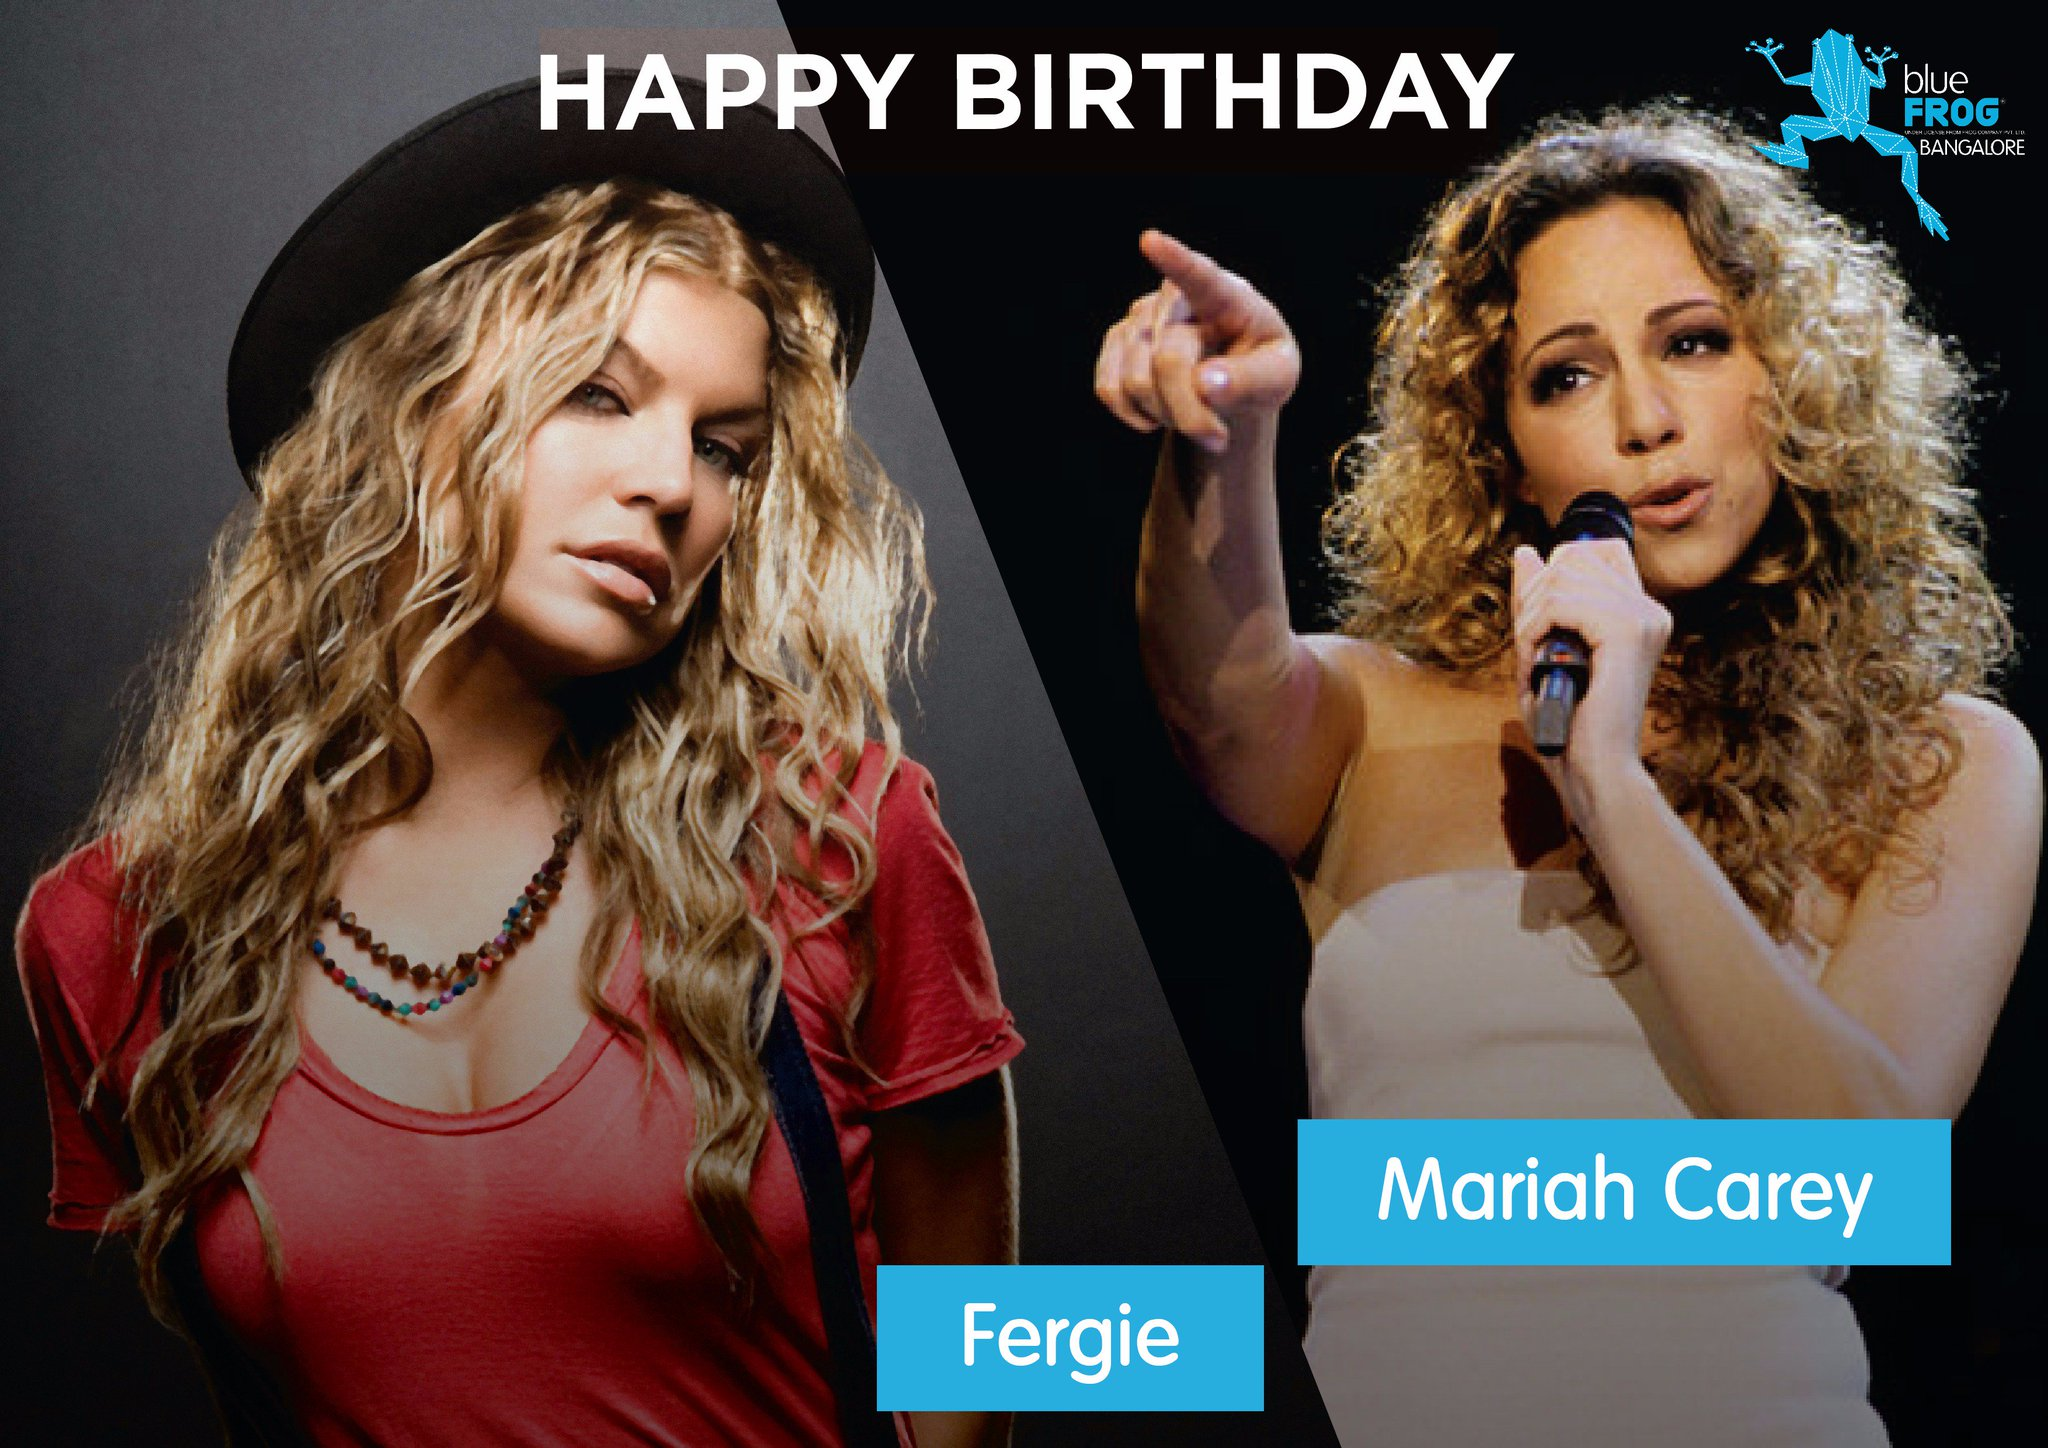 Happy Birthday Fergie & Mariah Carey. Who run the world? Girls.